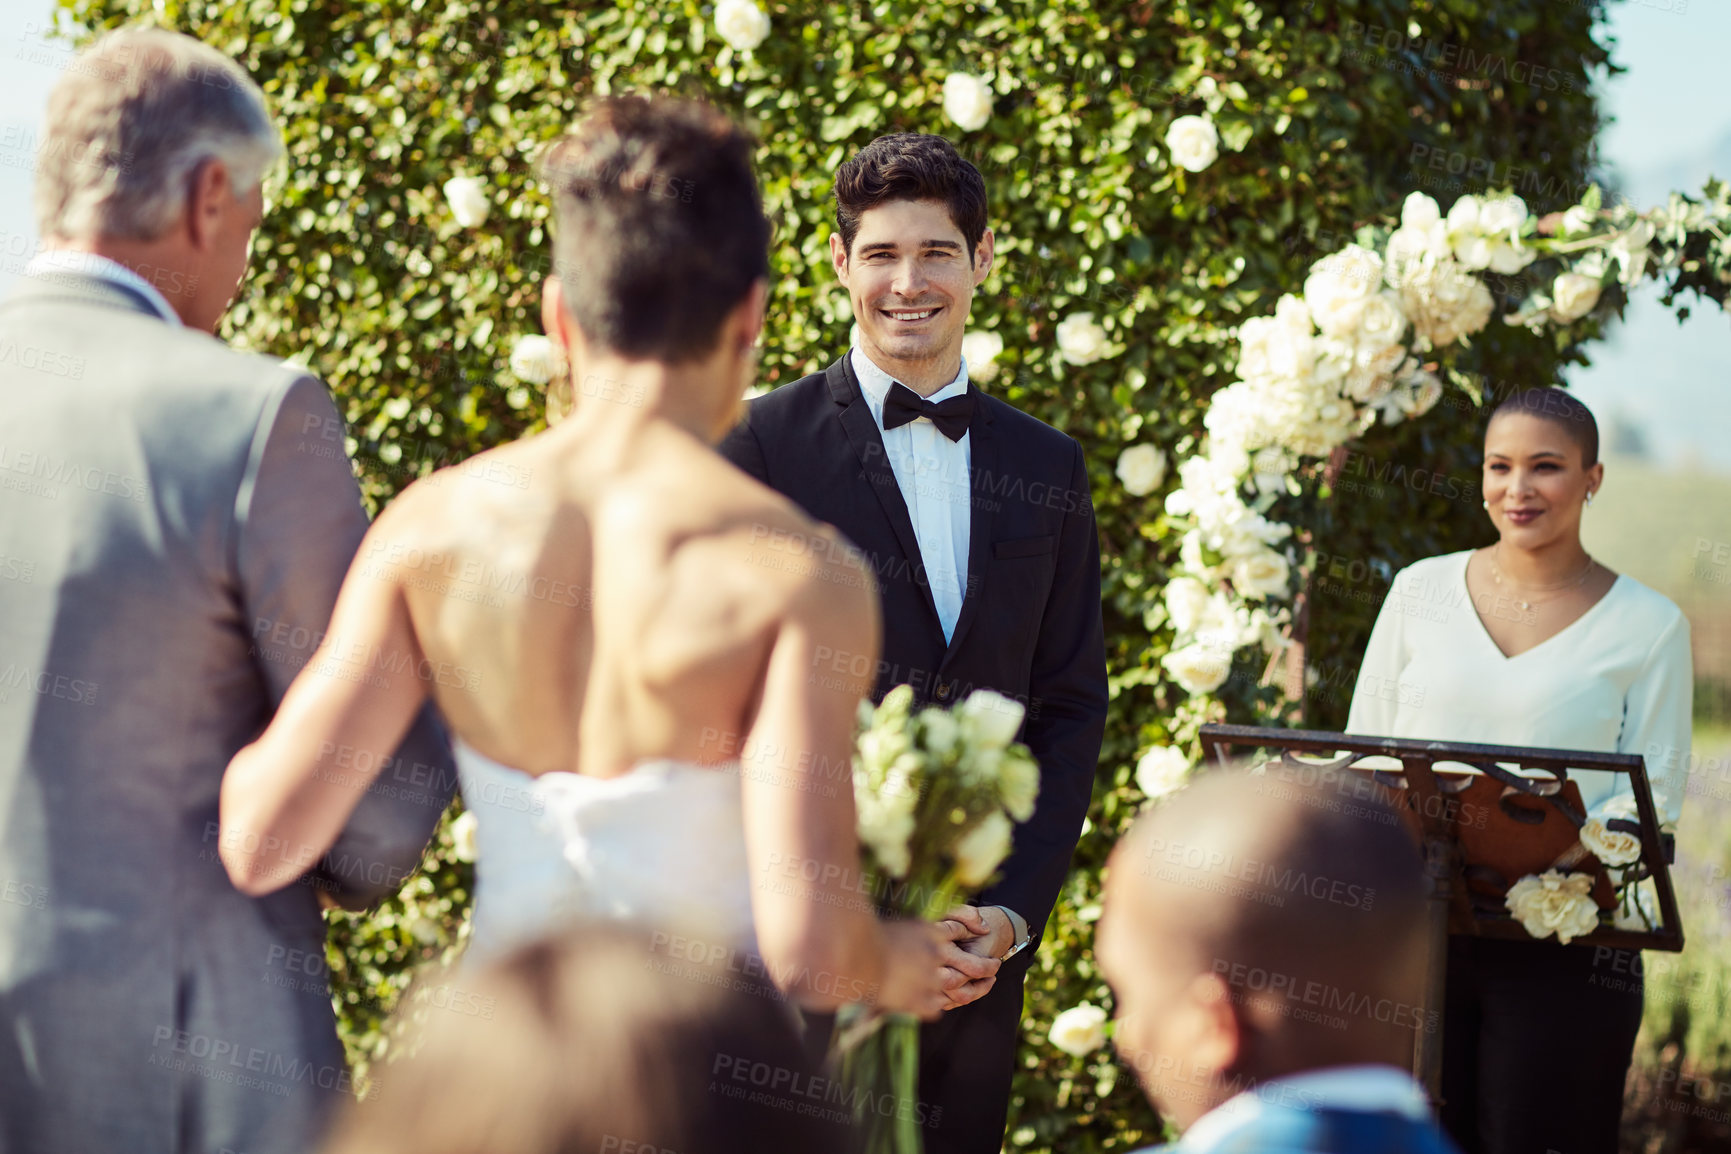 Buy stock photo Shot of a mature man walking his daughter down the aisle while her groom waits at the wedding altar